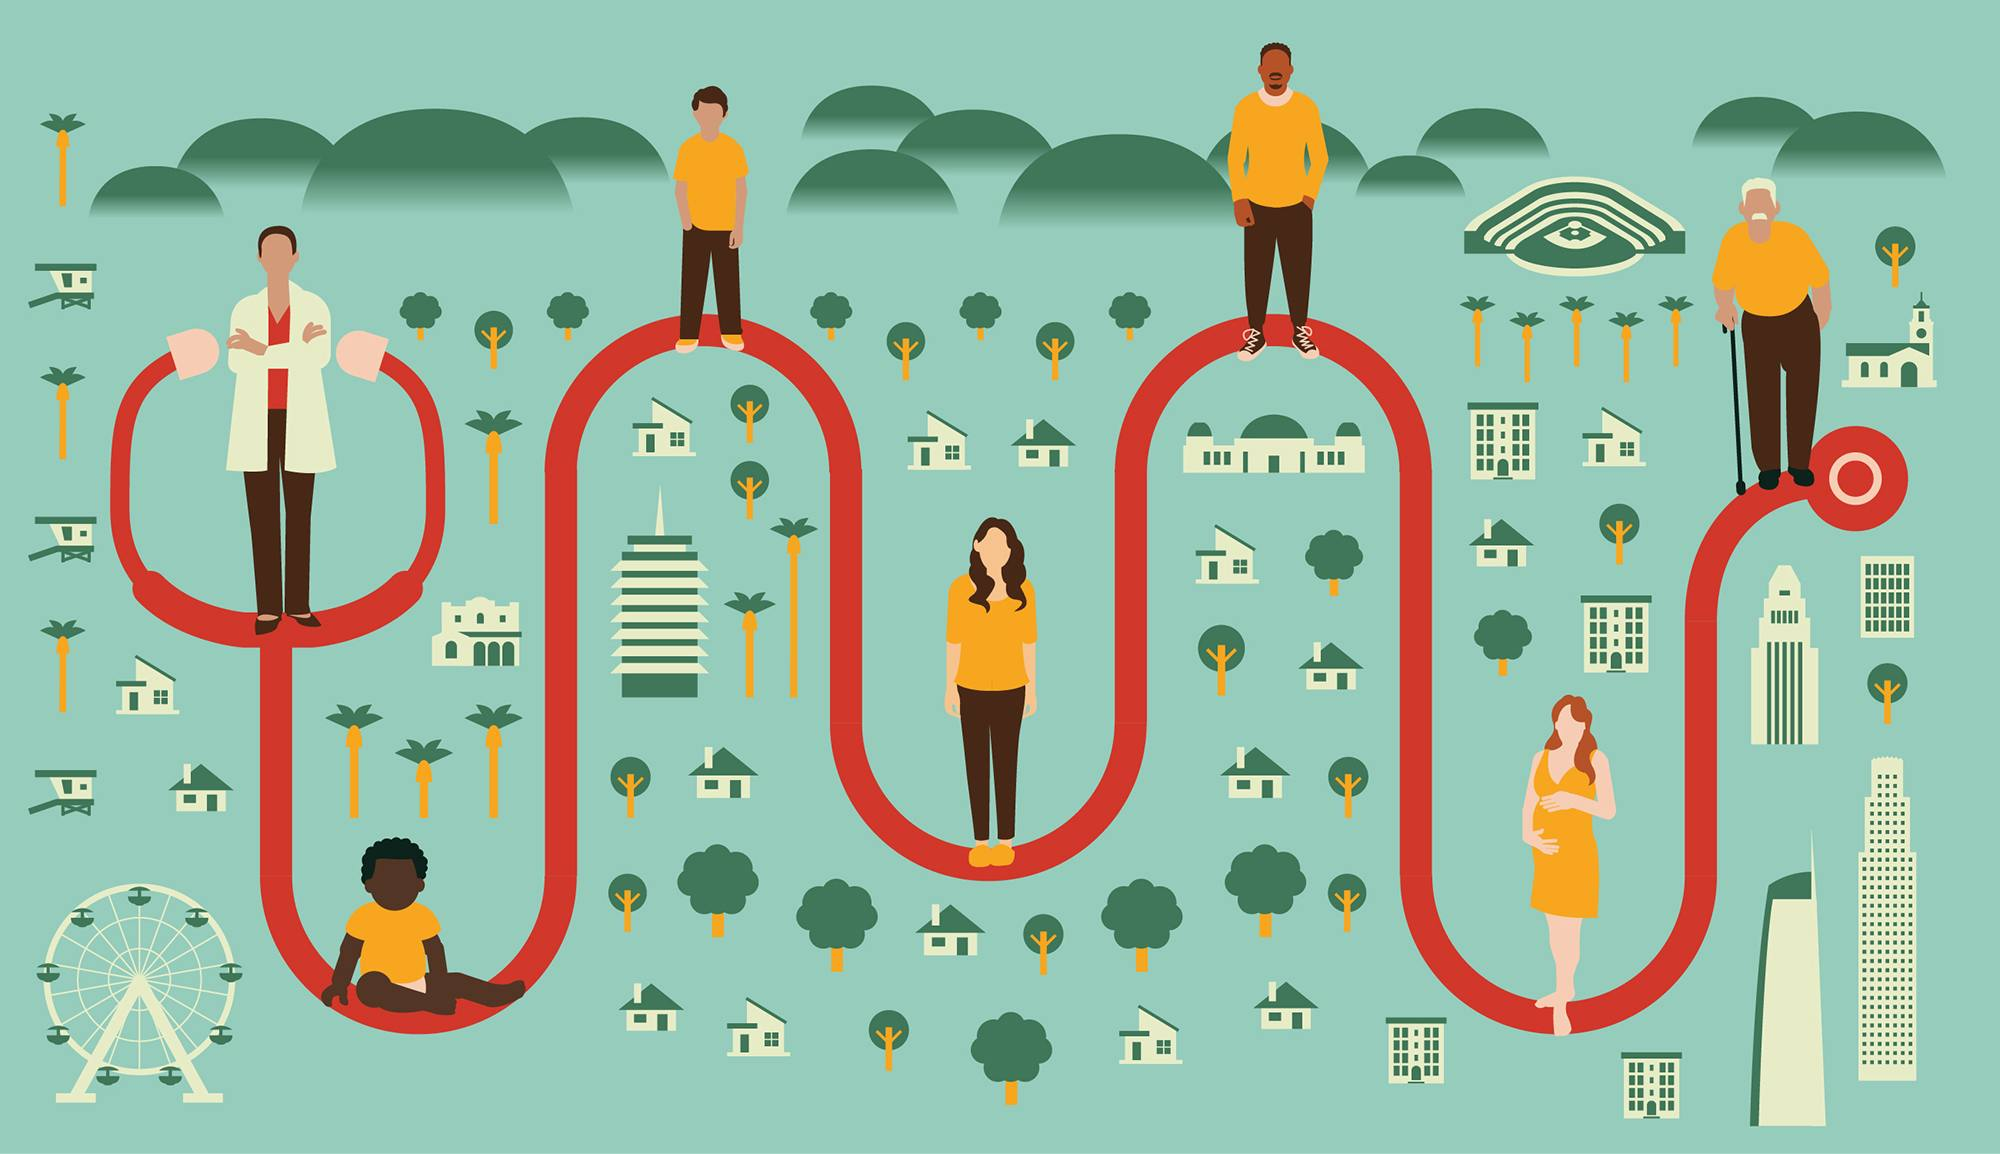 Community-based medicine starts with primary care